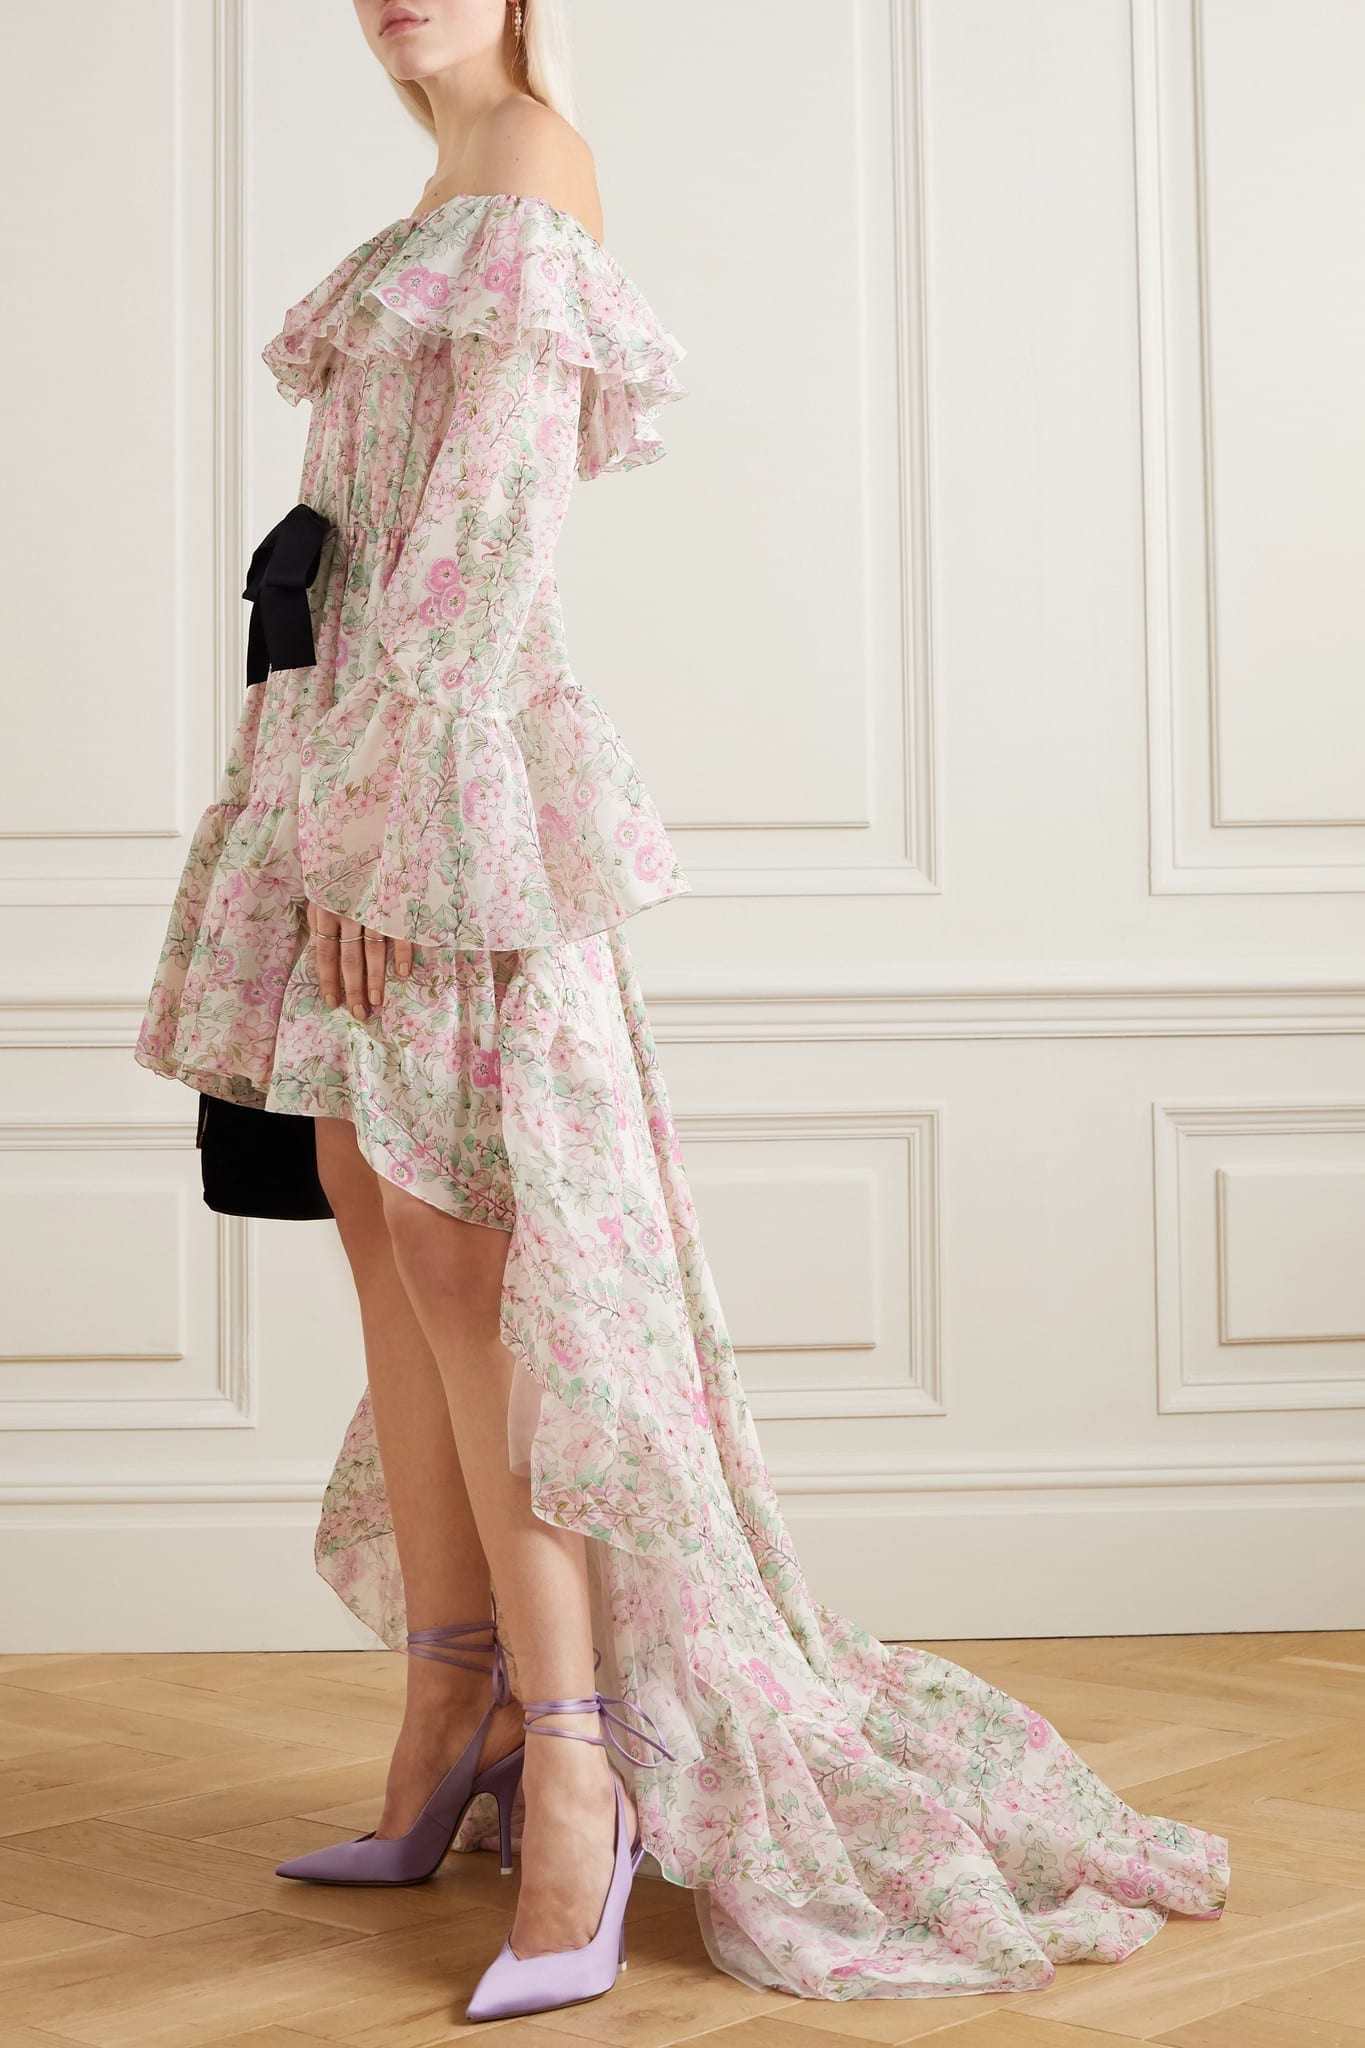 GIAMBATTISTA VALLI Asymmetric Bow-embellished Ruffled Floral-print Silk-chiffon Dress